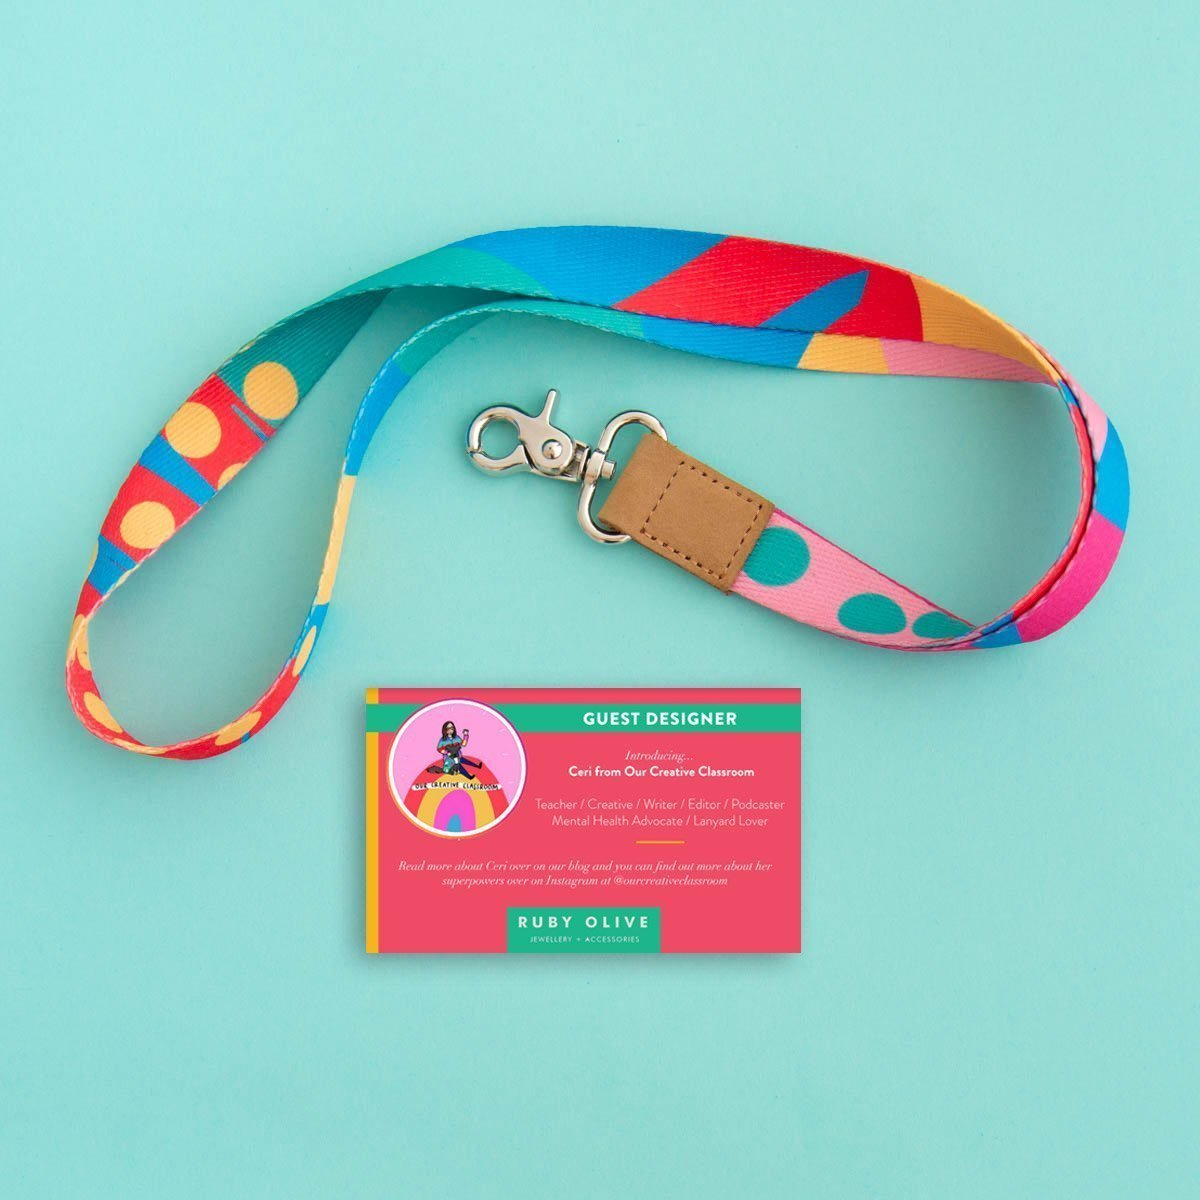 Ceris-Lanyard-Ourcreativeclassroom-Ruby-Olive-collaboration-1200x1200.jpg